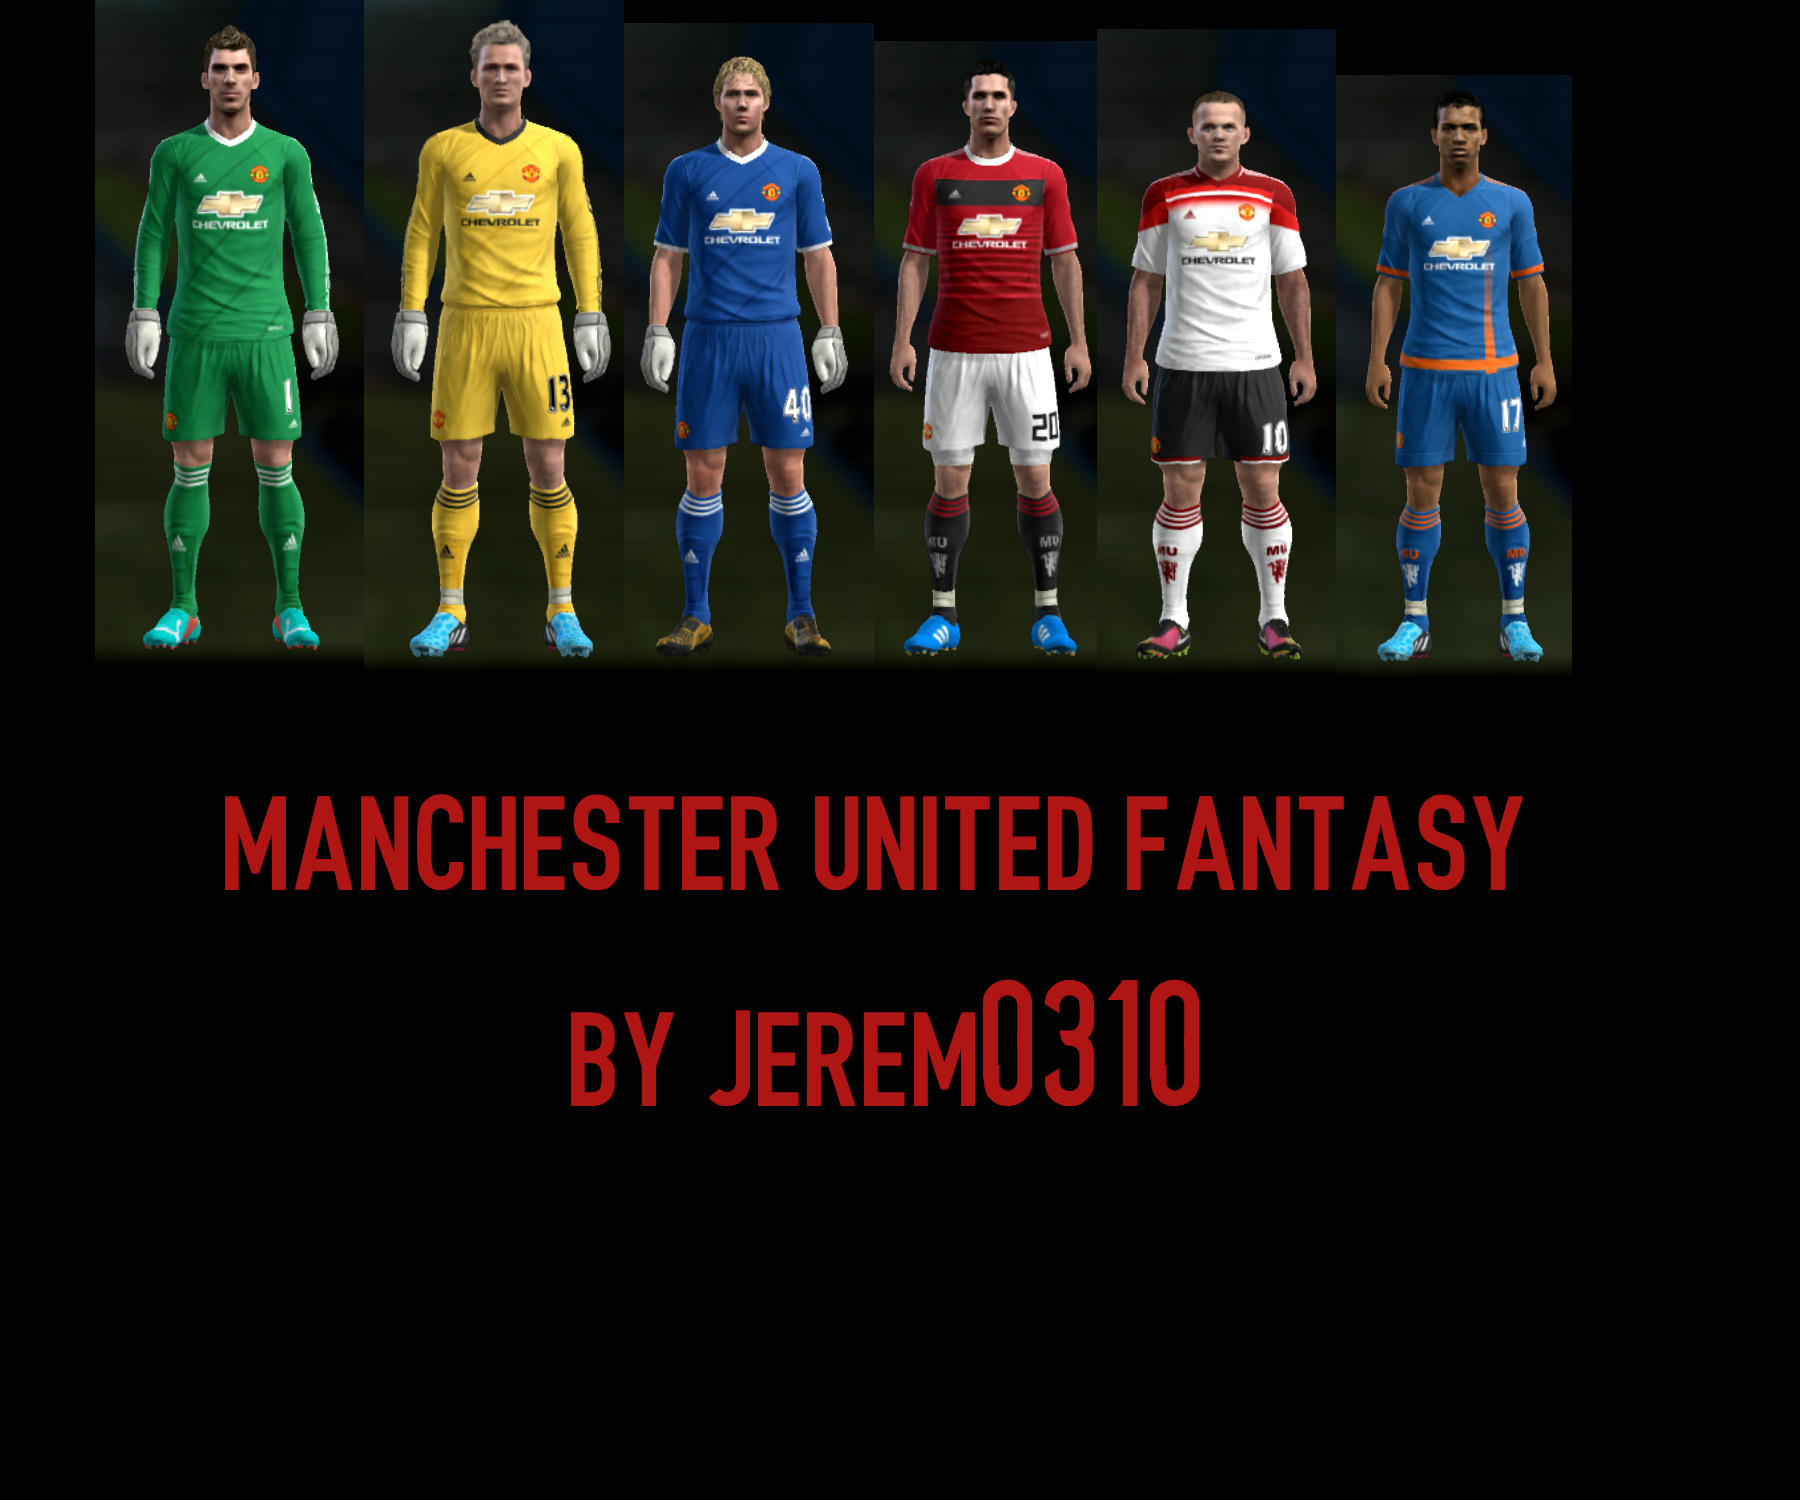 PES 2013 Manchester United Fantasy Kits by JEREM0310